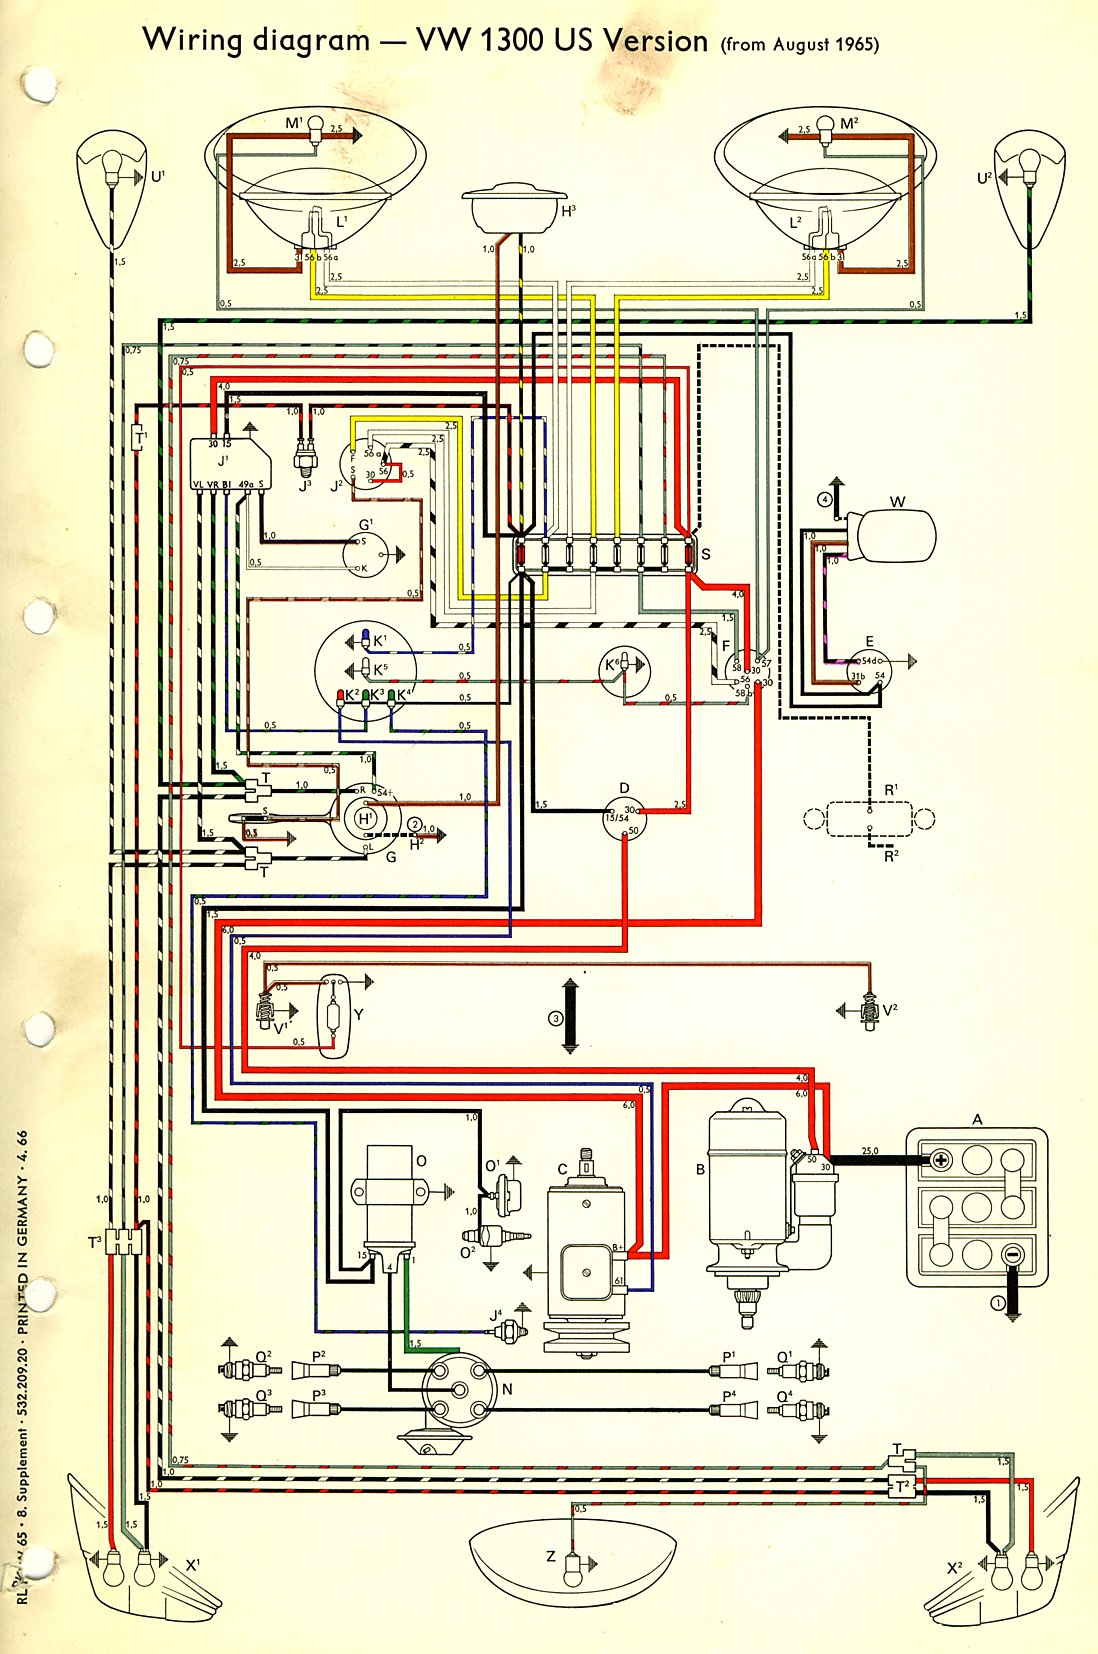 hight resolution of 1966 vw coil wire diagram wiring diagram yer 1966 bug wiring diagram schematic wiring diagrams mon